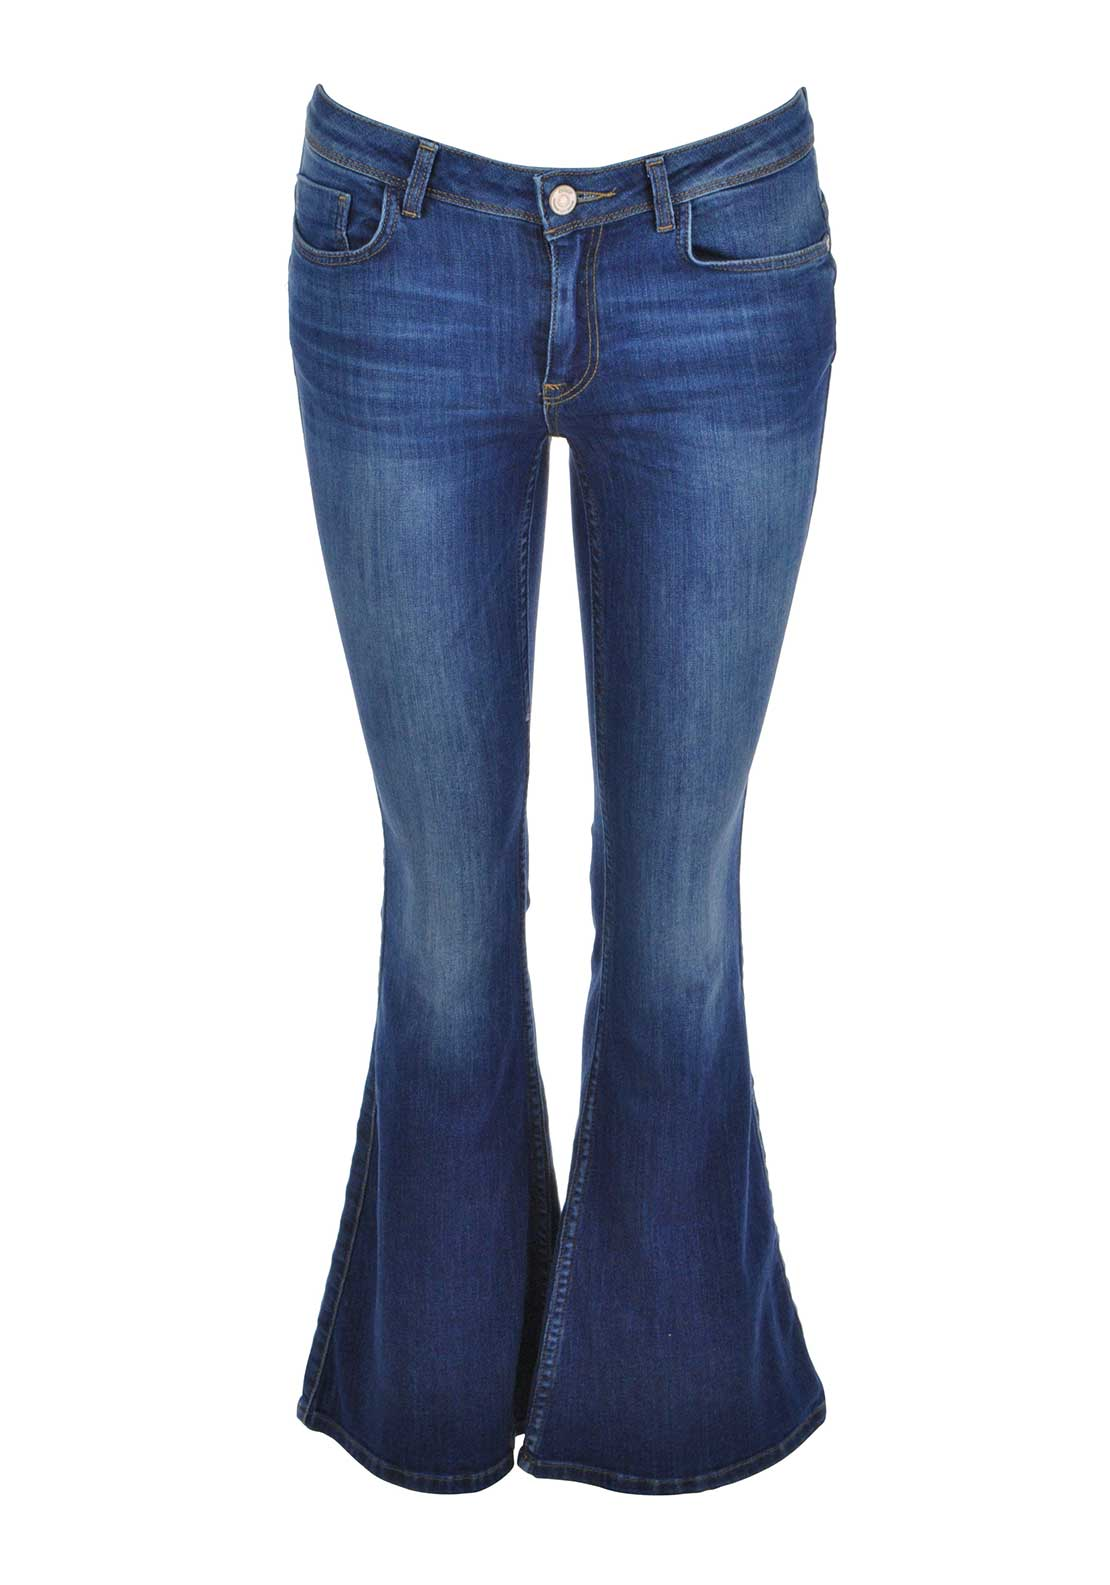 Only Gigi Reg Retro Flared Jeans, Blue